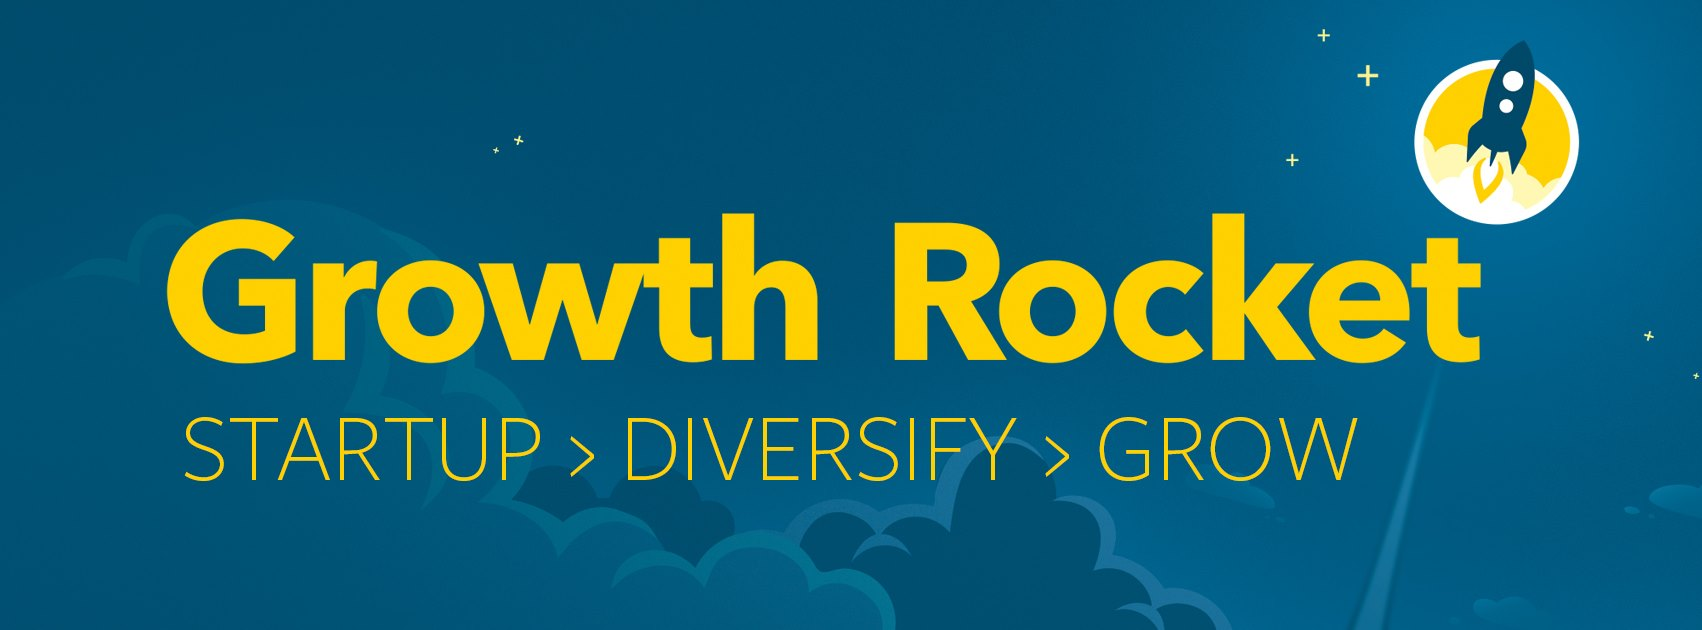 Growth Rocket Banner